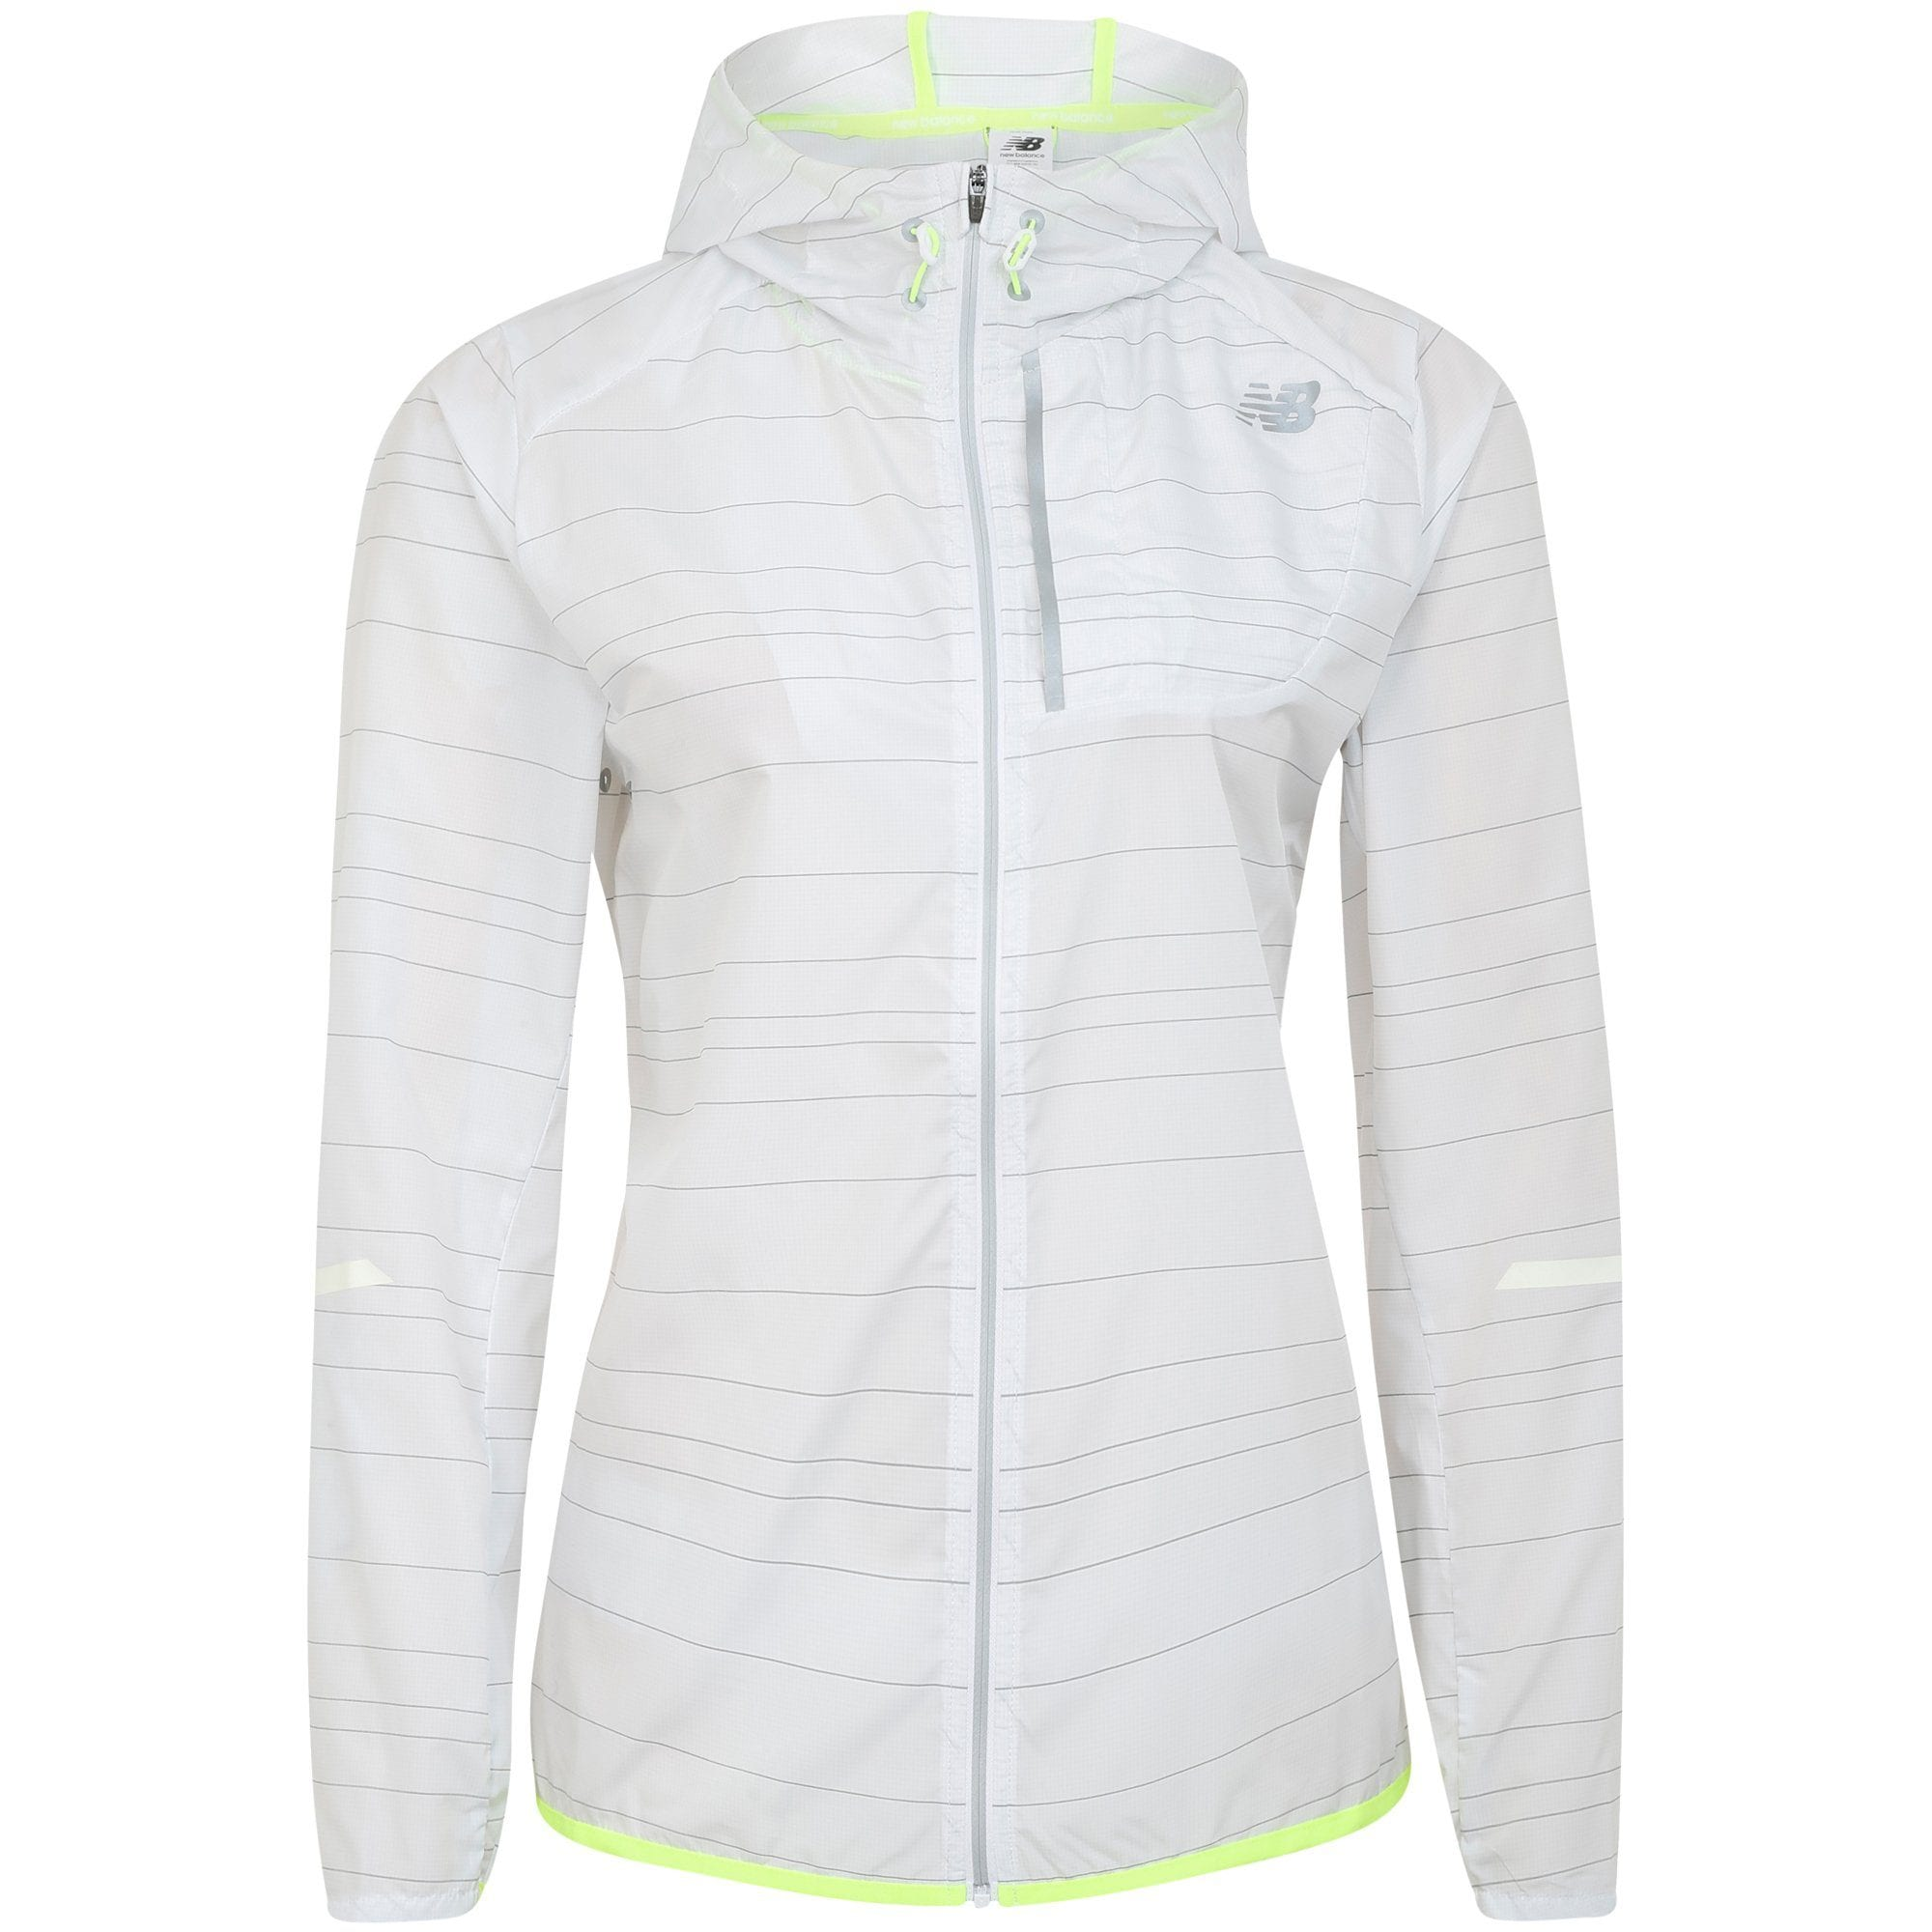 New Balance Reflective Lite Packable Laufjacke Damen